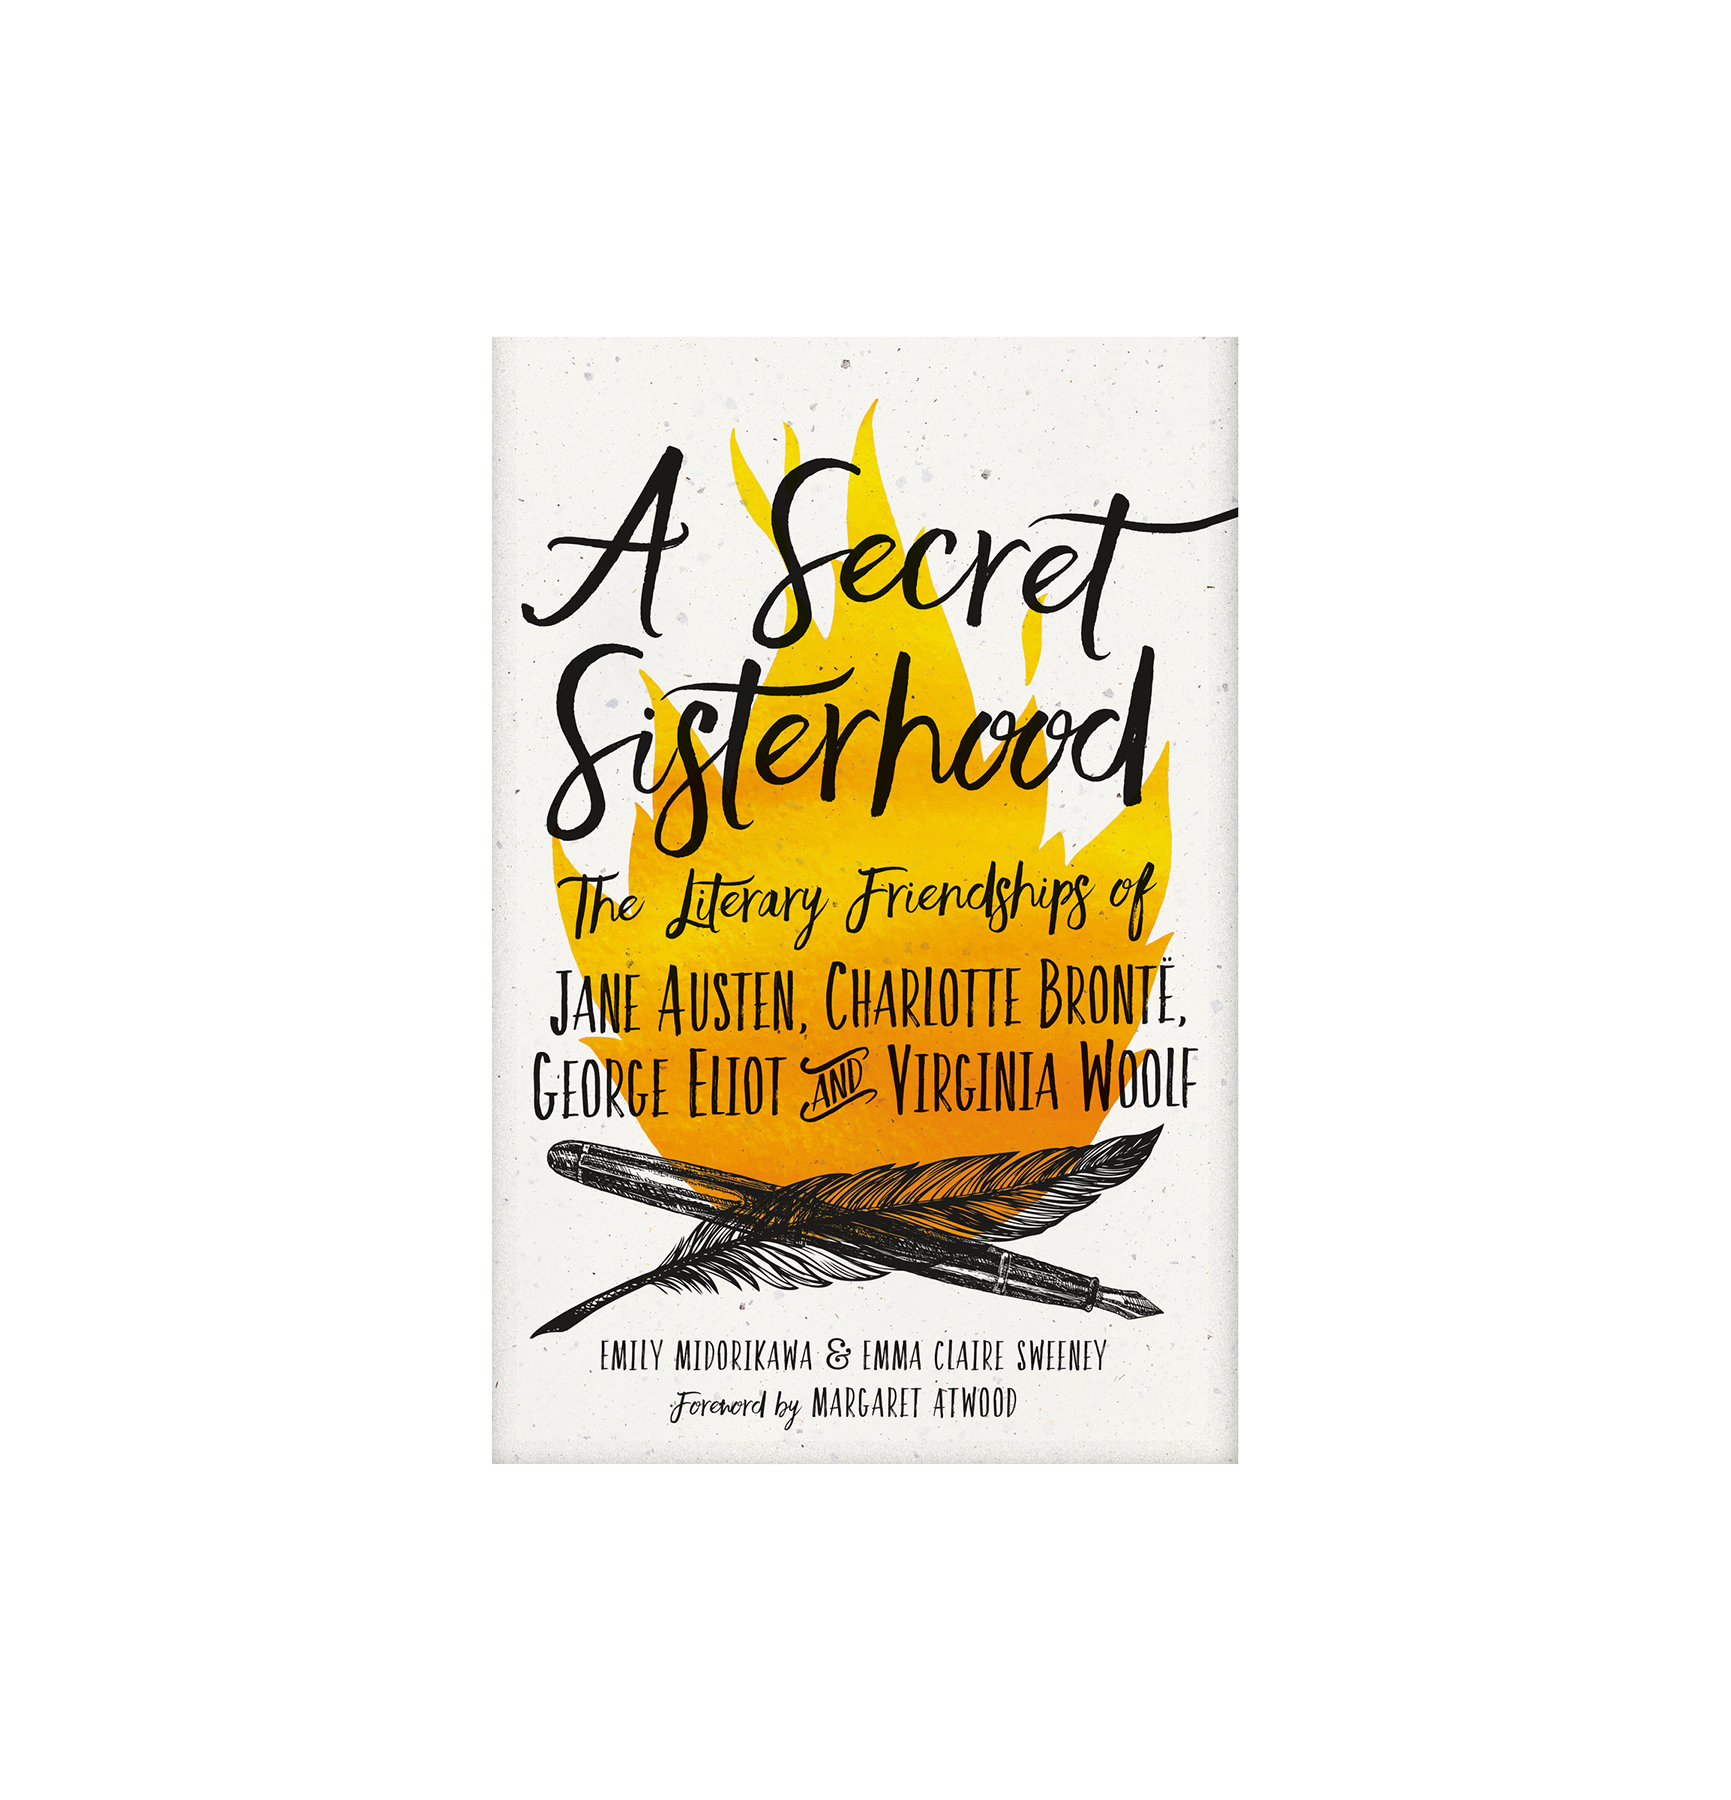 A Secret Sisterhood: The Literary Friendships of Jane Austen, Charlotte Brontë, George Eliot, and Virginia Woolf, by Emily Midorikawa, Emma Claire Sweeney